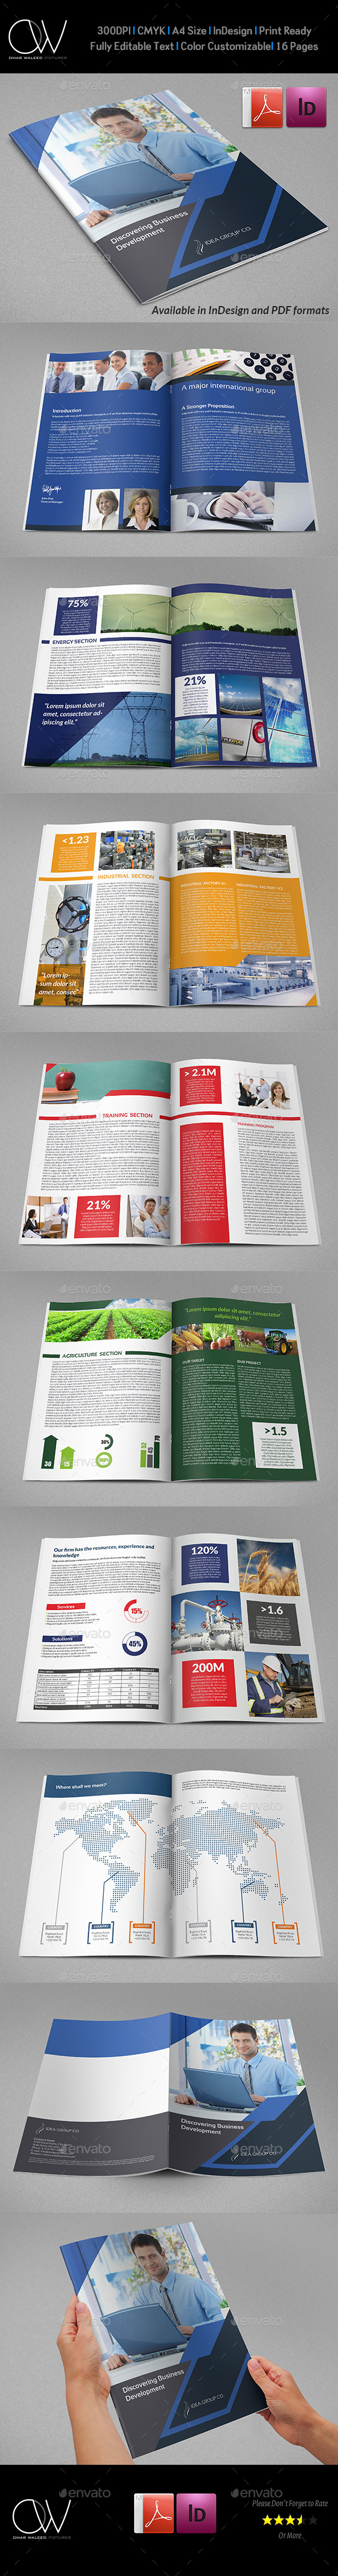 GraphicRiver Corporate Brochure Template Vol.40 16 Pages 10142463